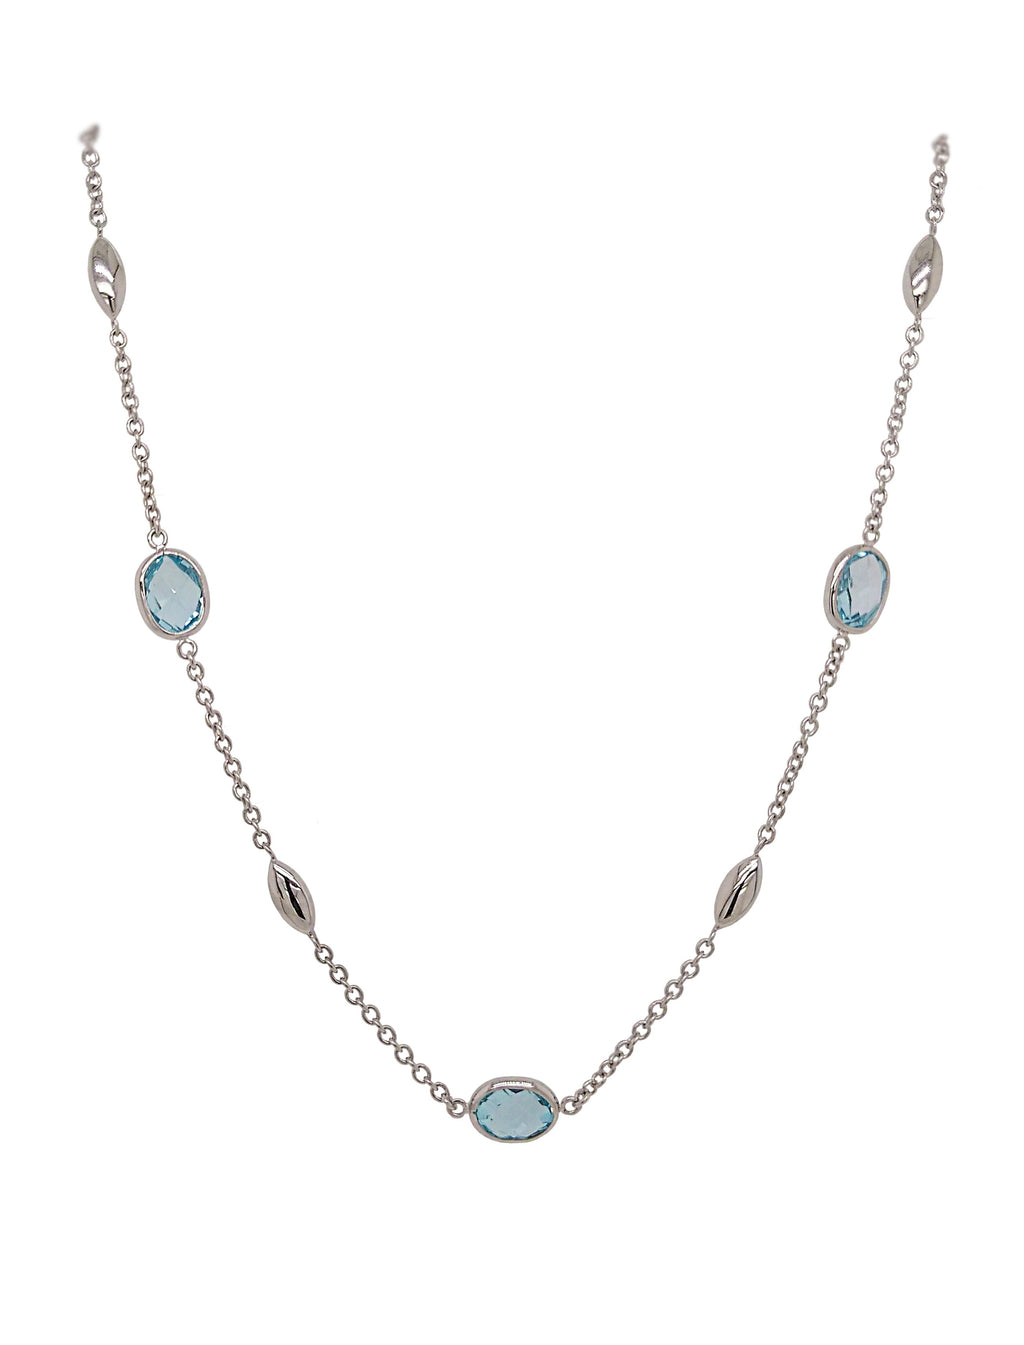 9ct White Gold Blue Topaz & Marquise Bead Necklace